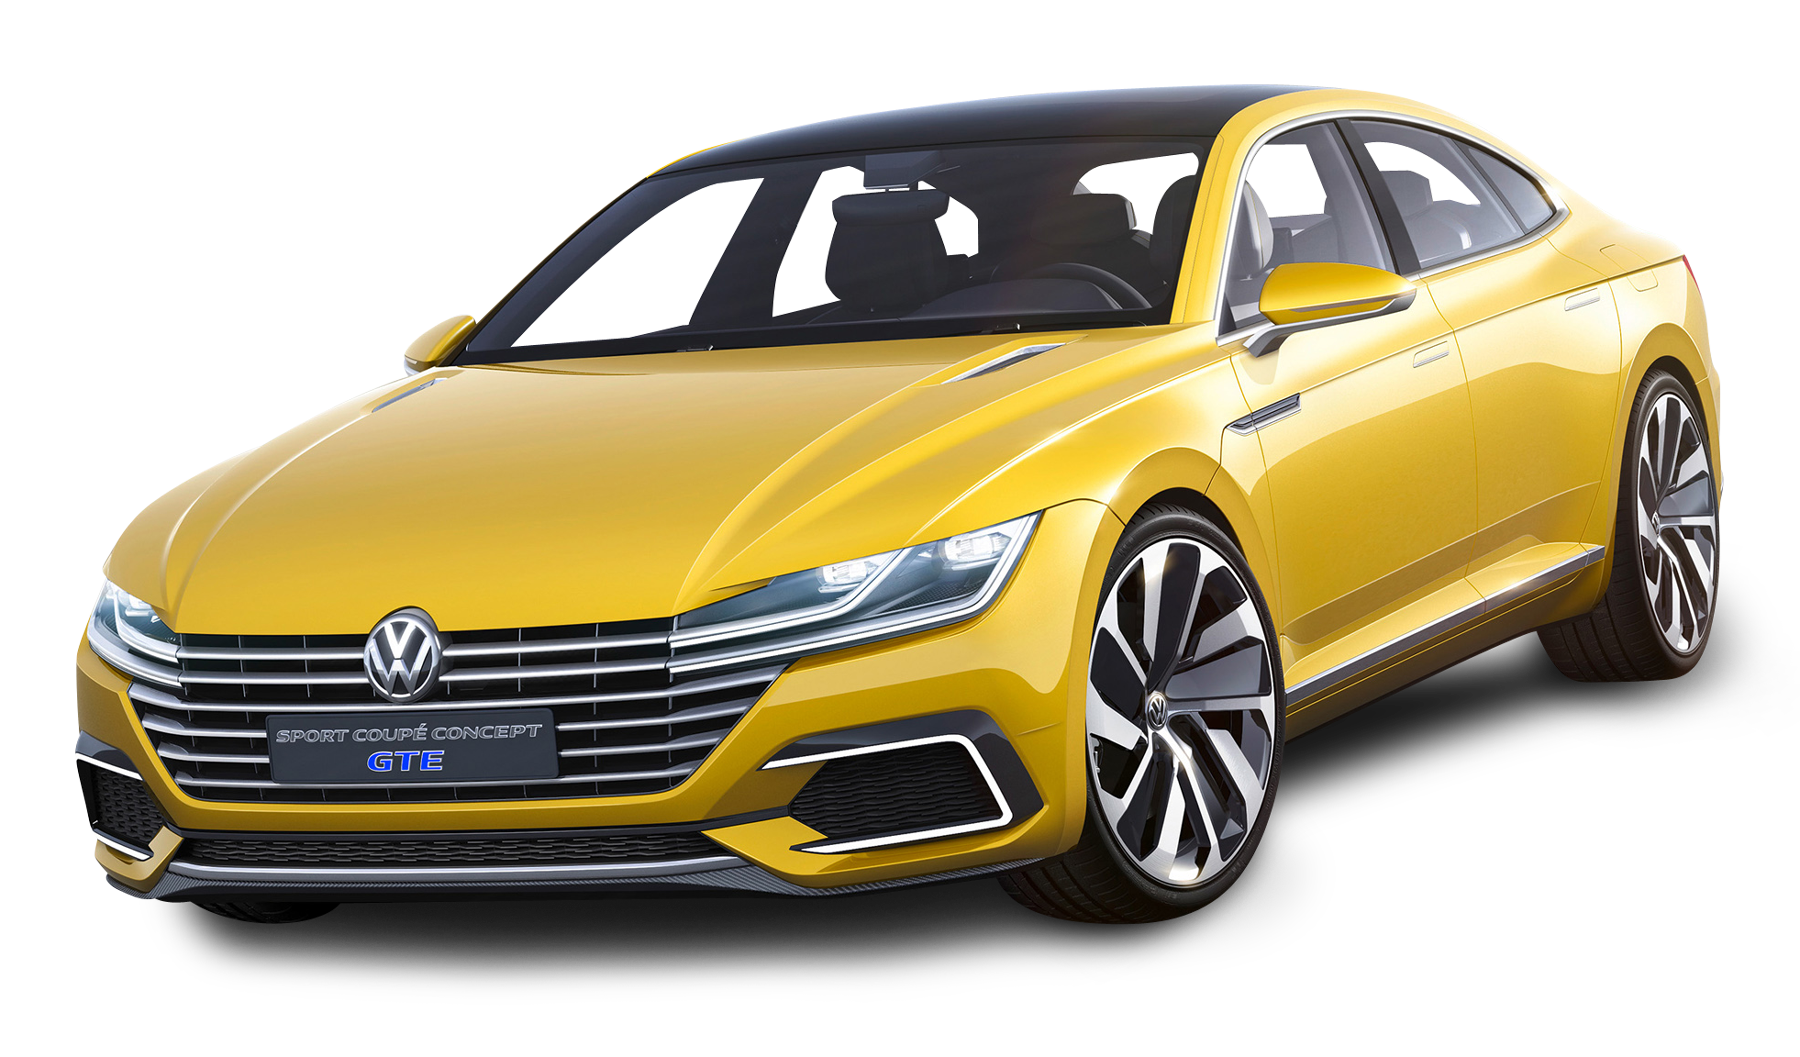 volkswagen sport coupe gte yellow car png image pngpix 9313